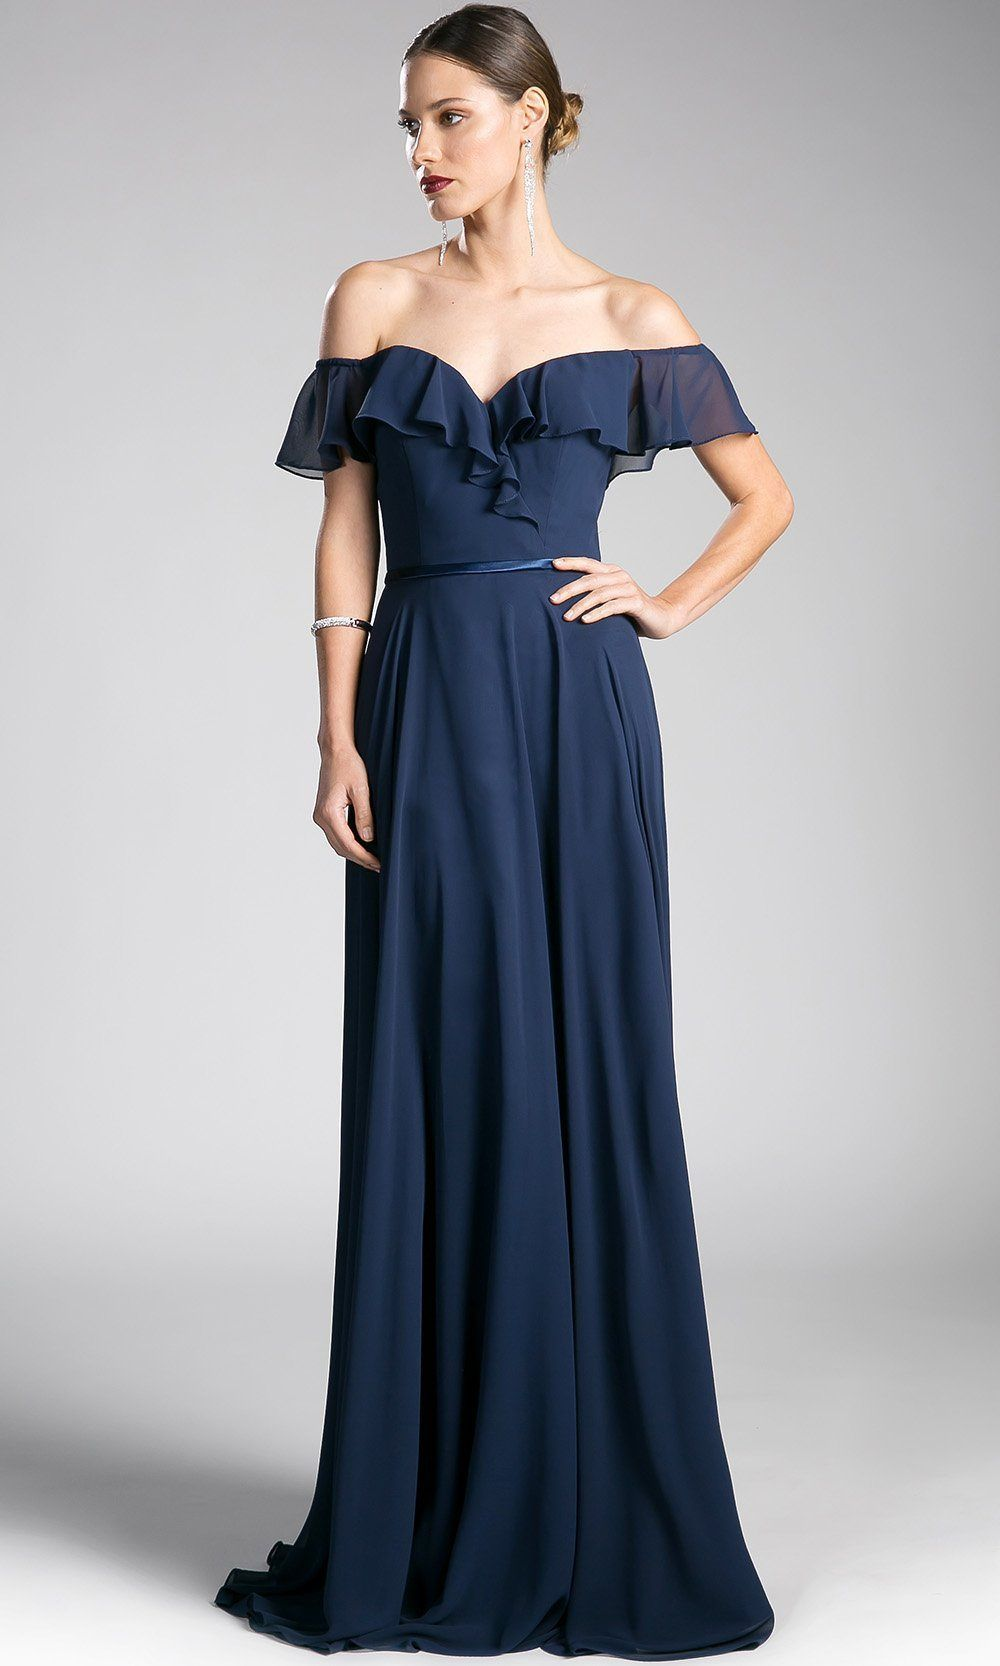 68251ab2ac1 long navy blue off shoulder flowy dress. Perfect dark blue gown for  bridesmaids